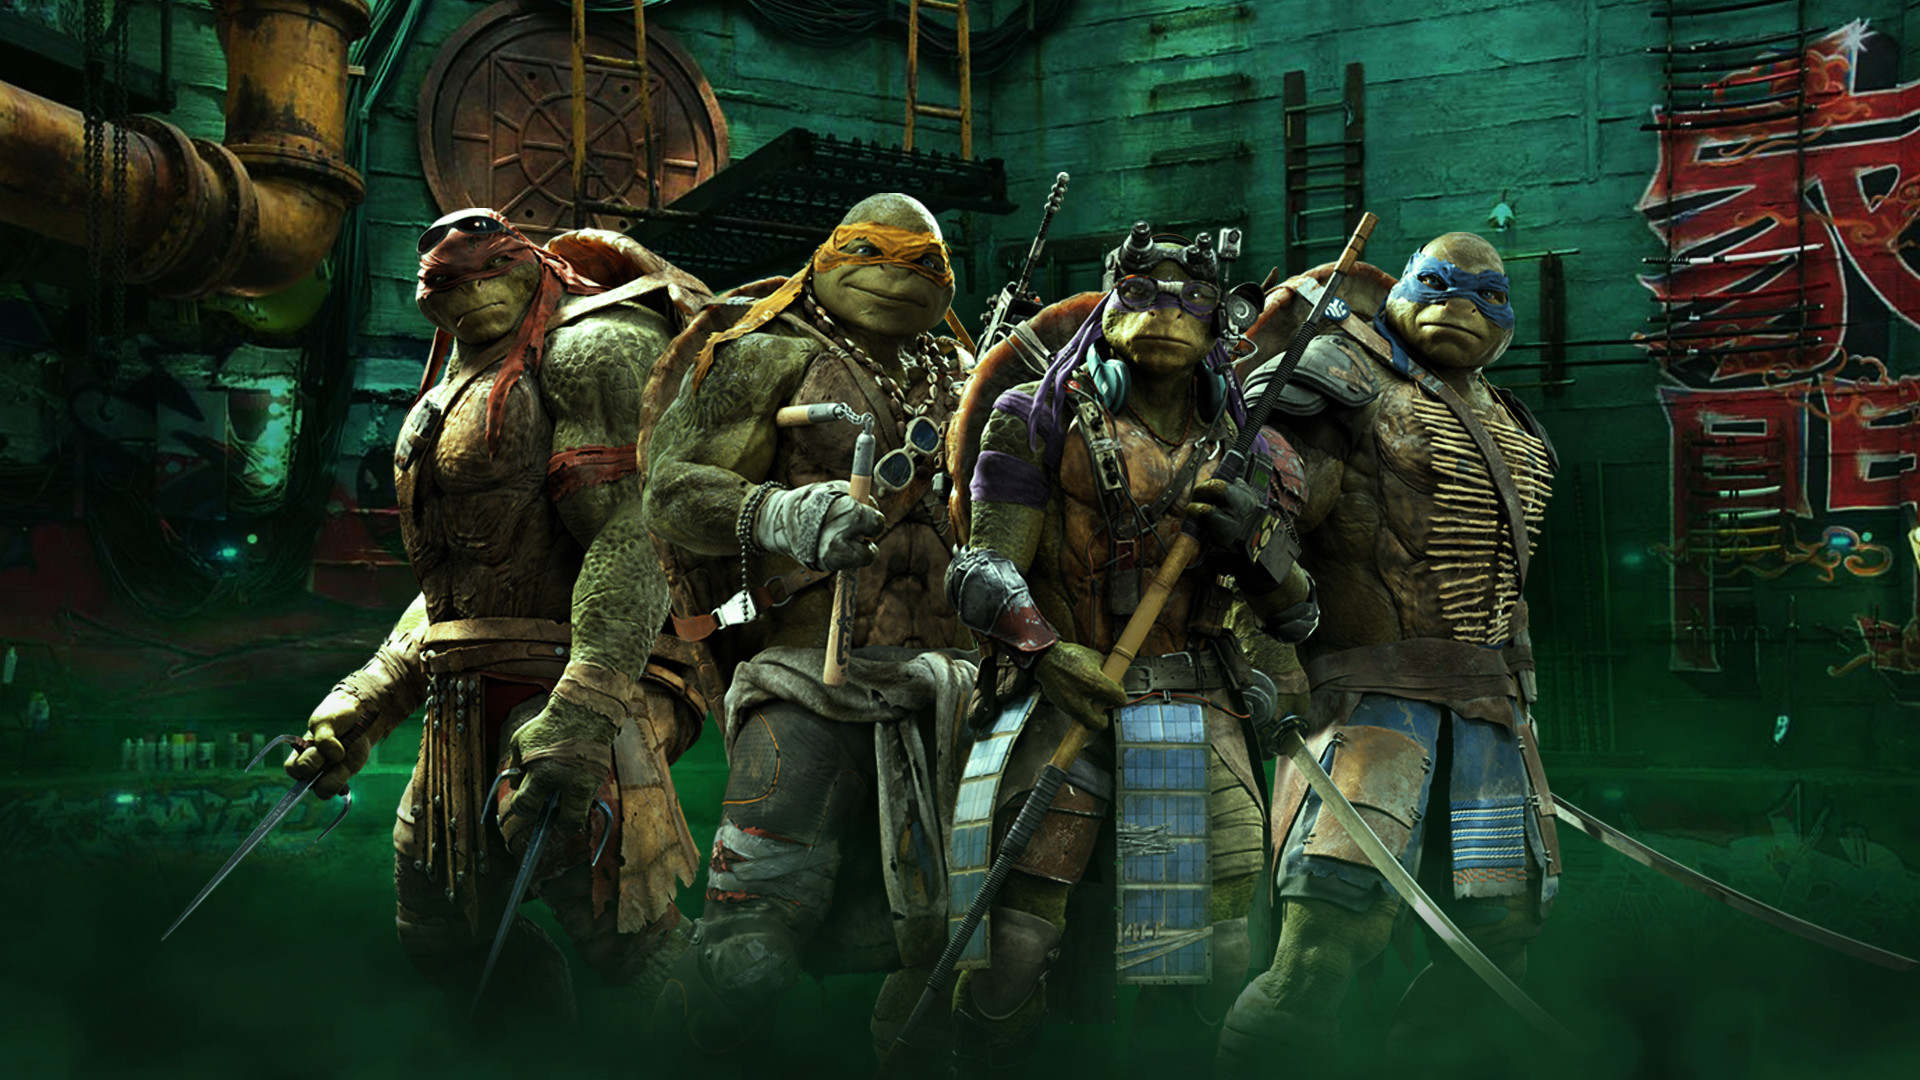 1920x1080 Teenage mutant ninja turtles wallpaper hd.